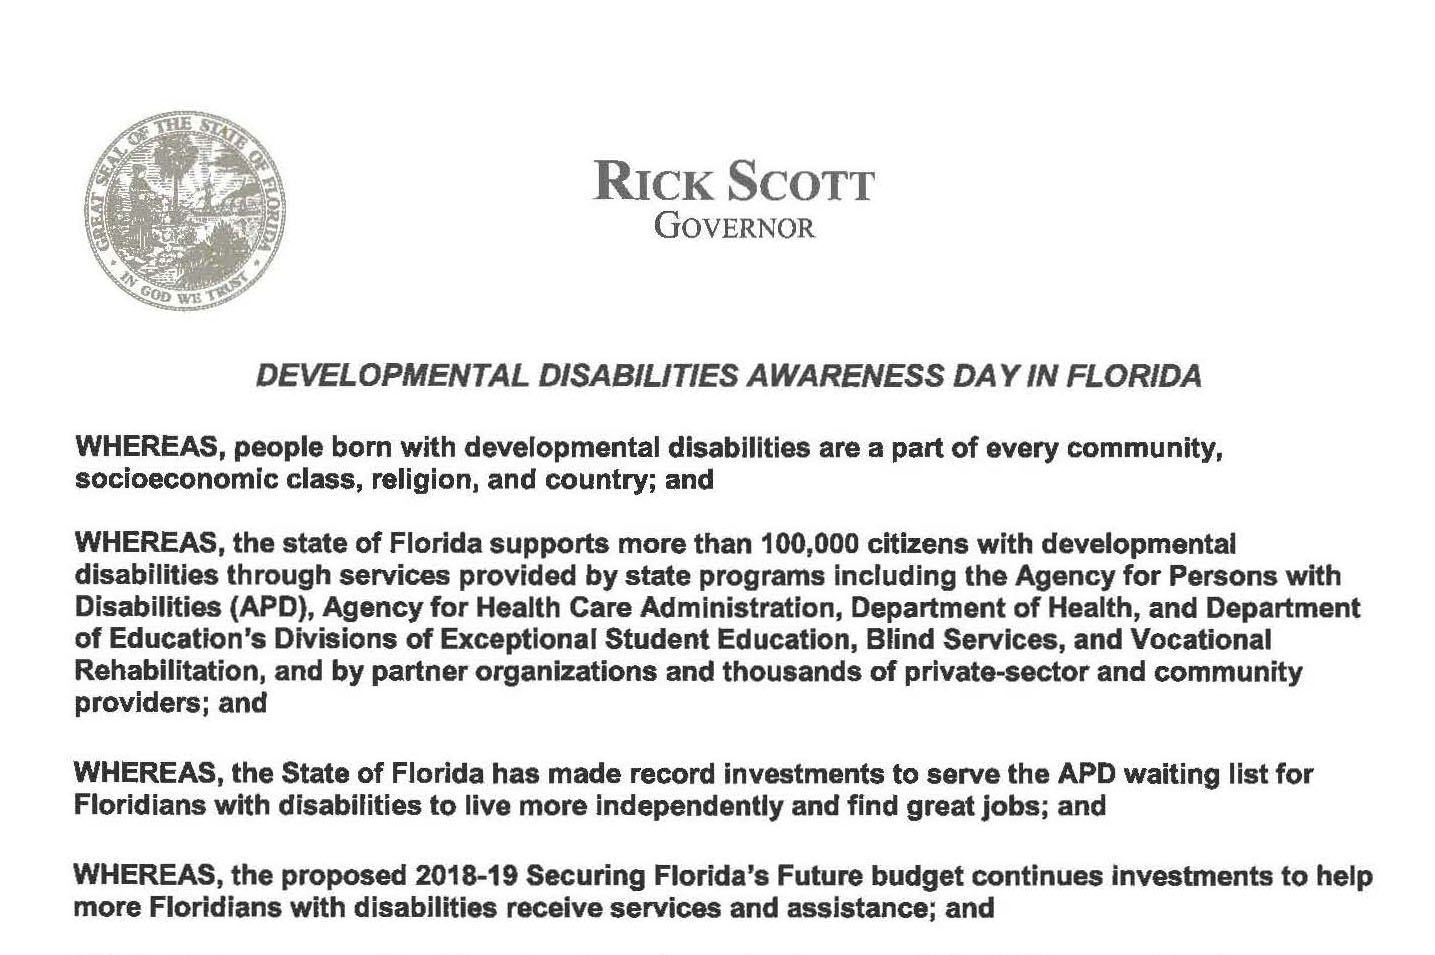 Apd agency for persons with disabilities state of florida image of developmental disability awareness day proclamation 1betcityfo Image collections